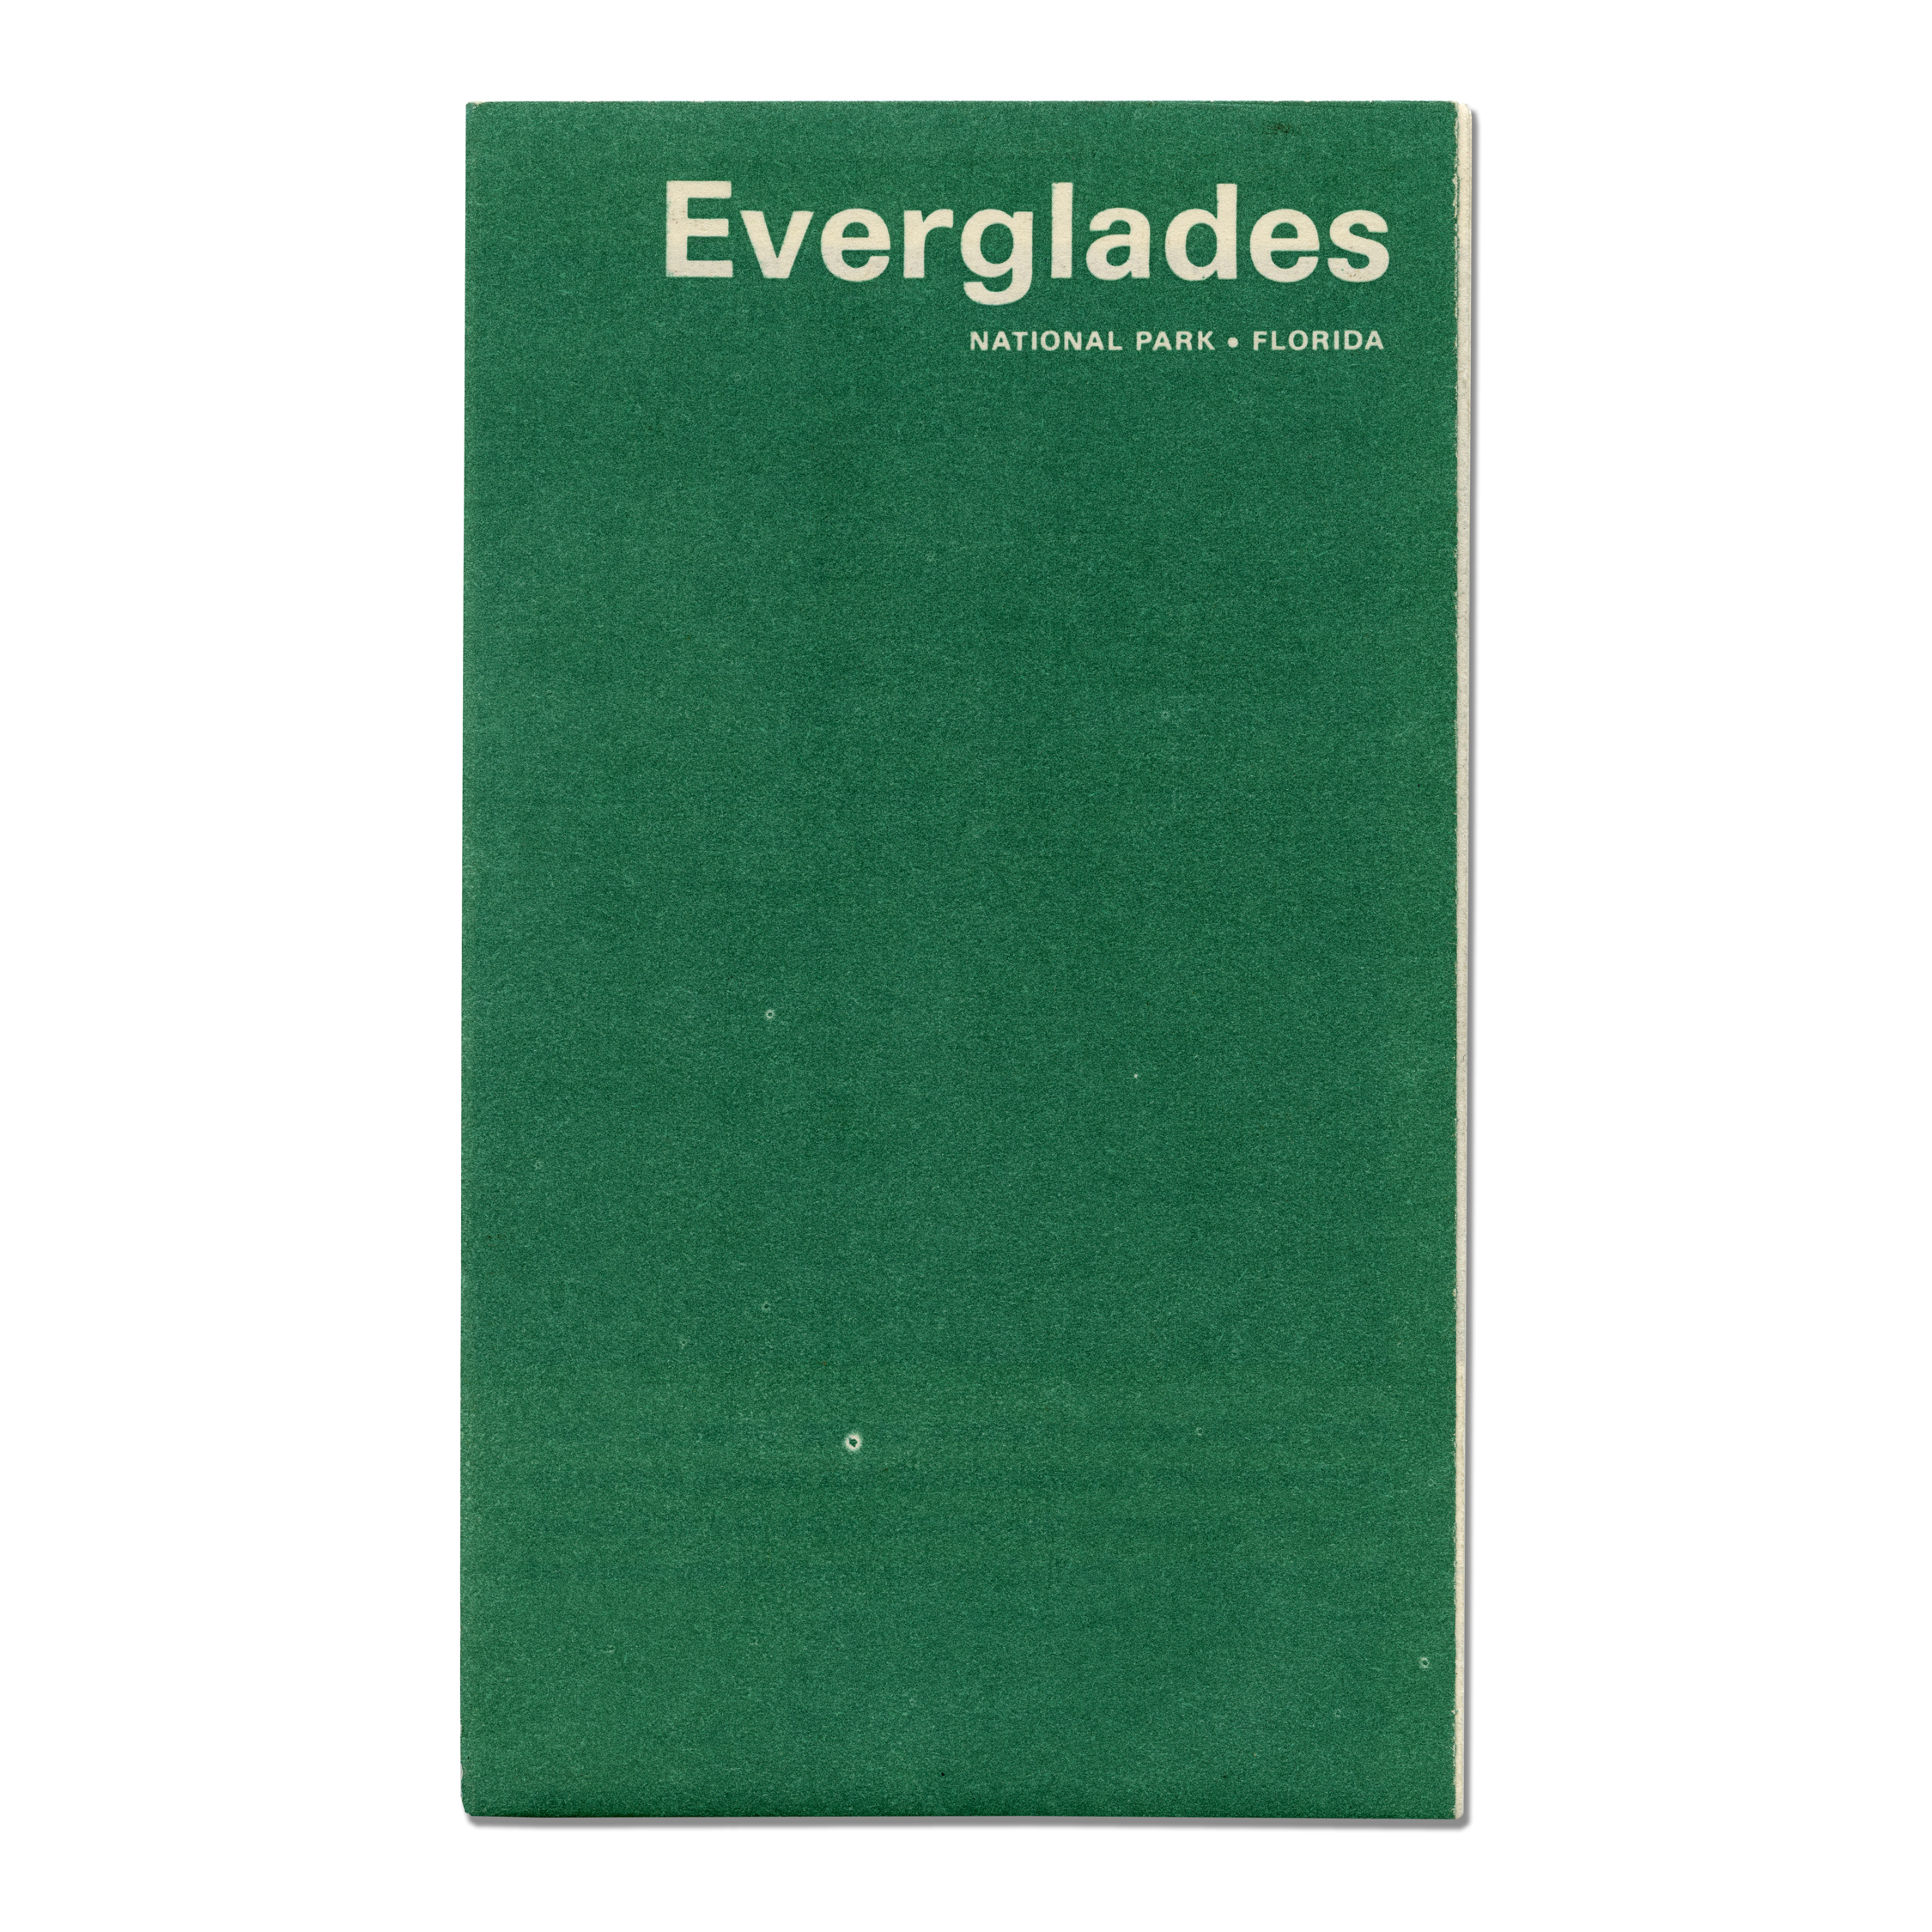 1971_everglades_national_park_brochure.jpg